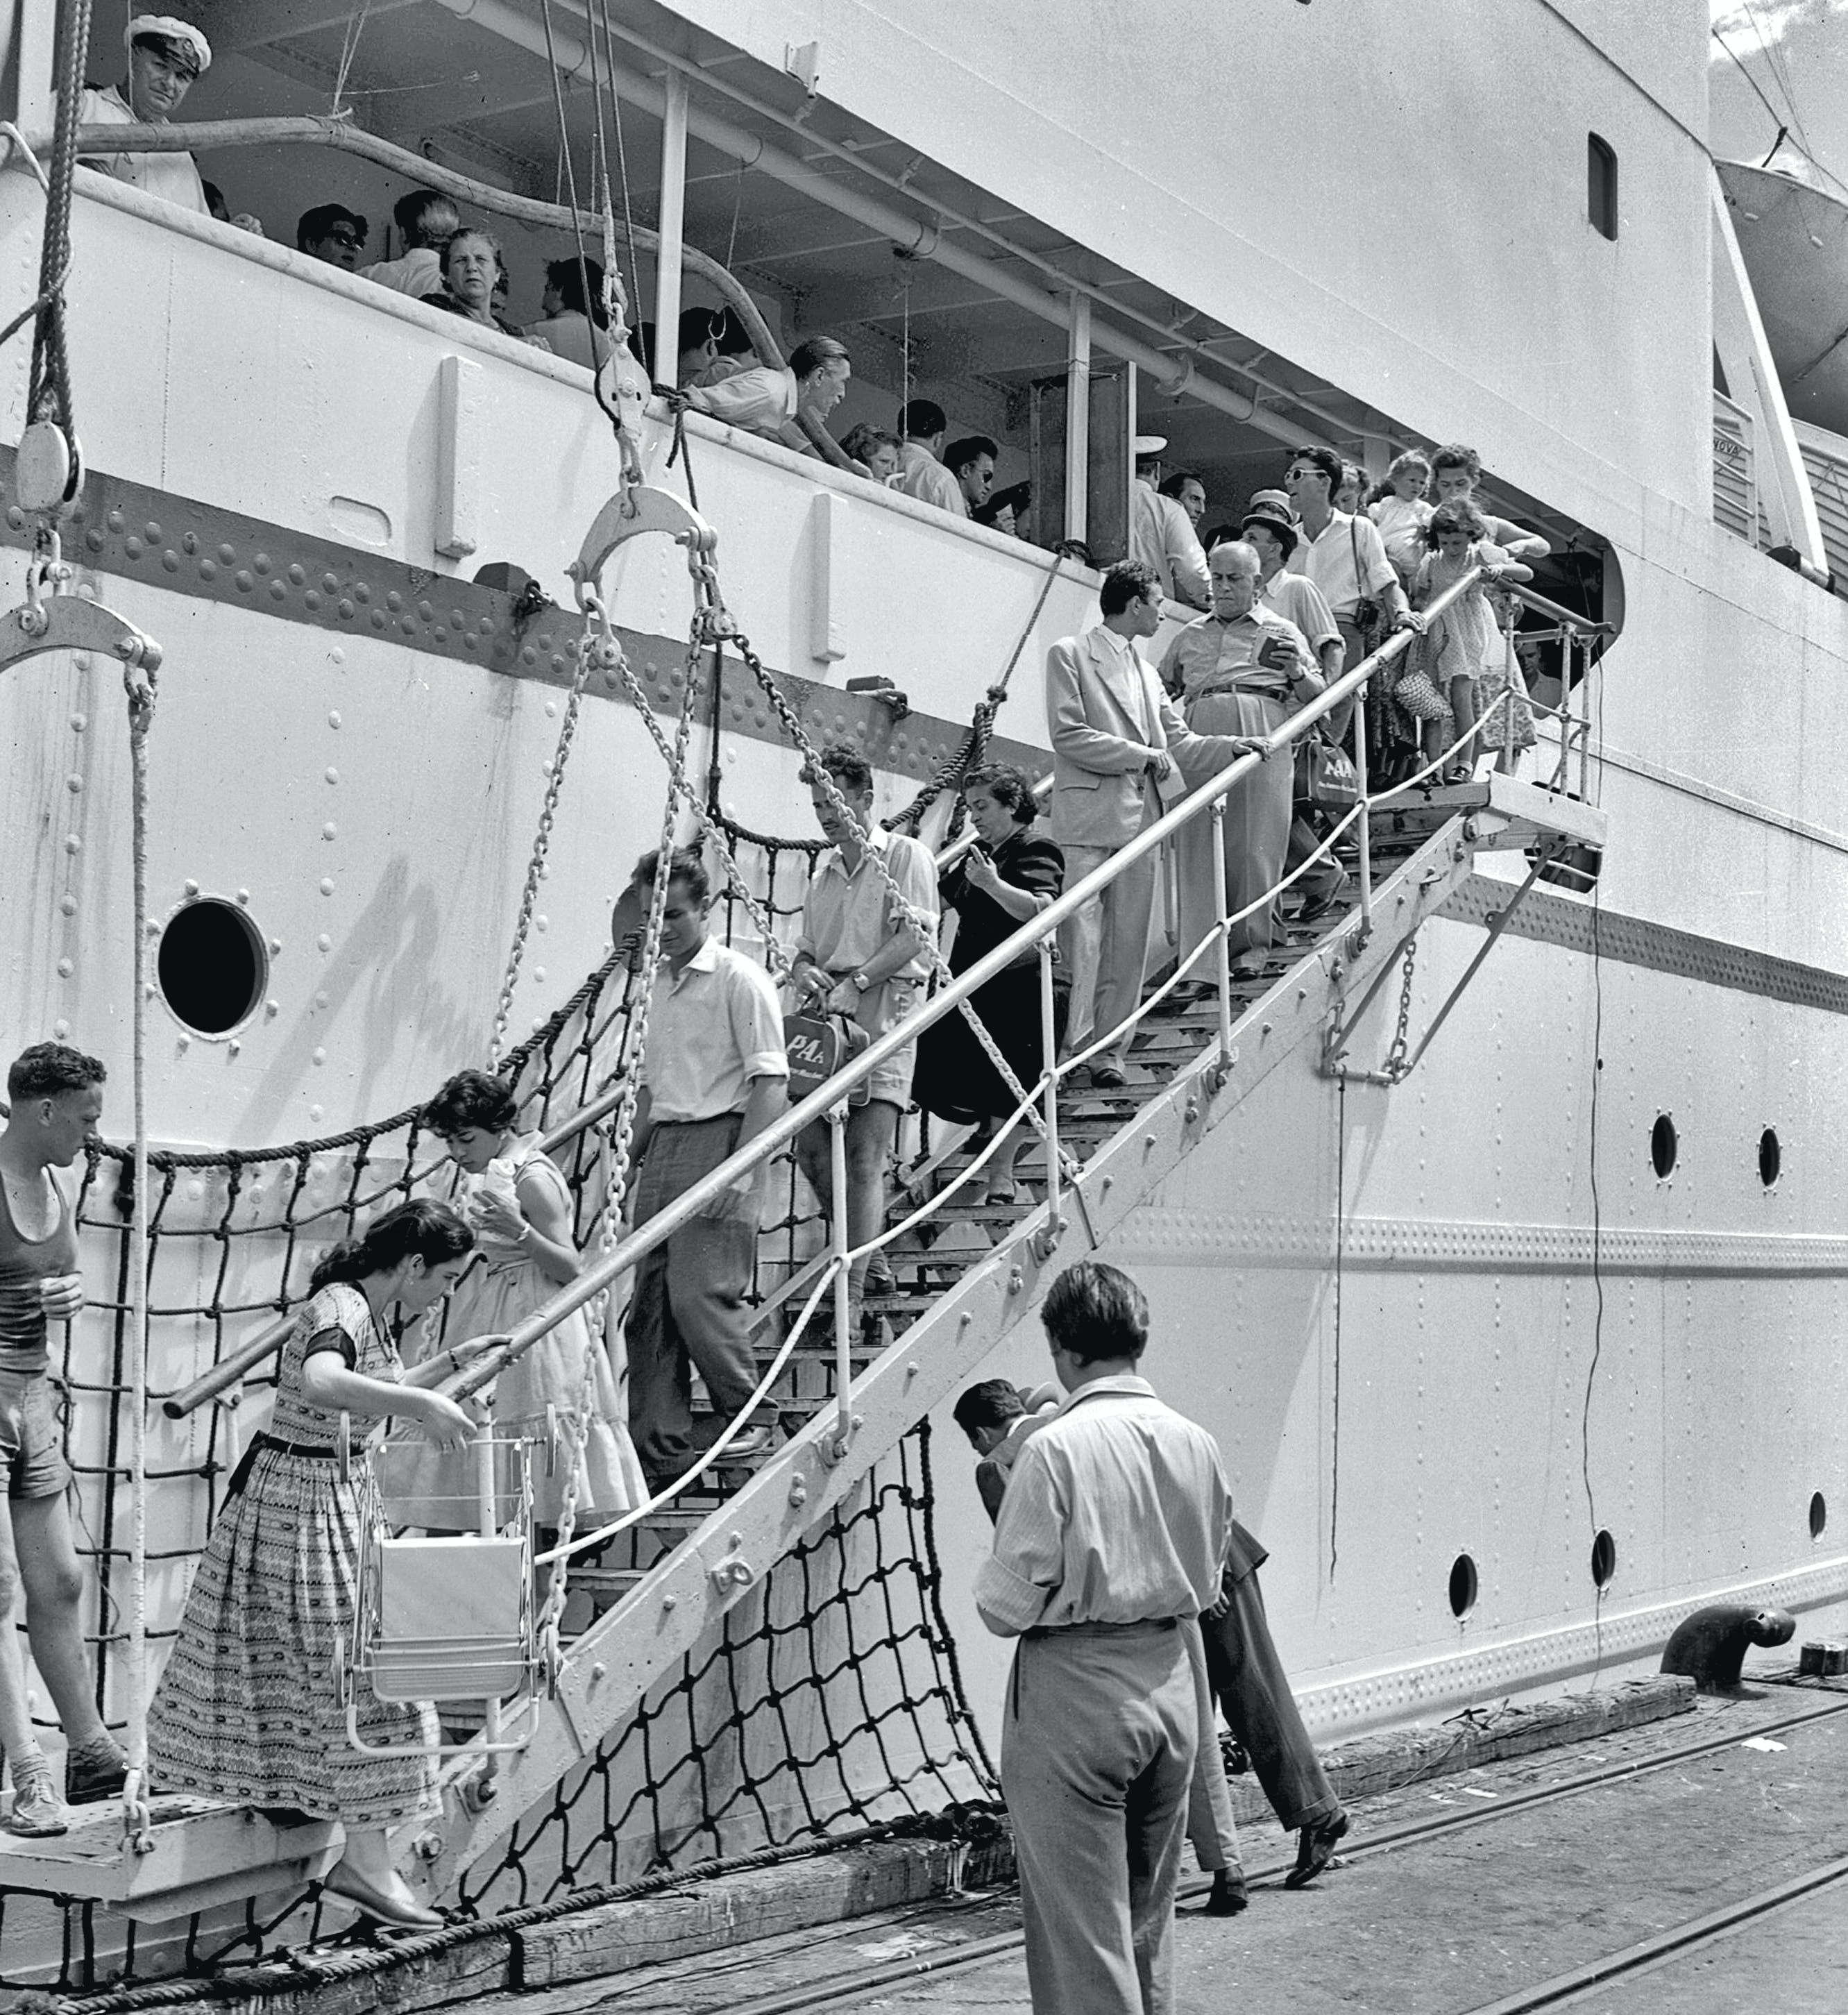 Hungarian migrants arrive on Aurelia, 1956